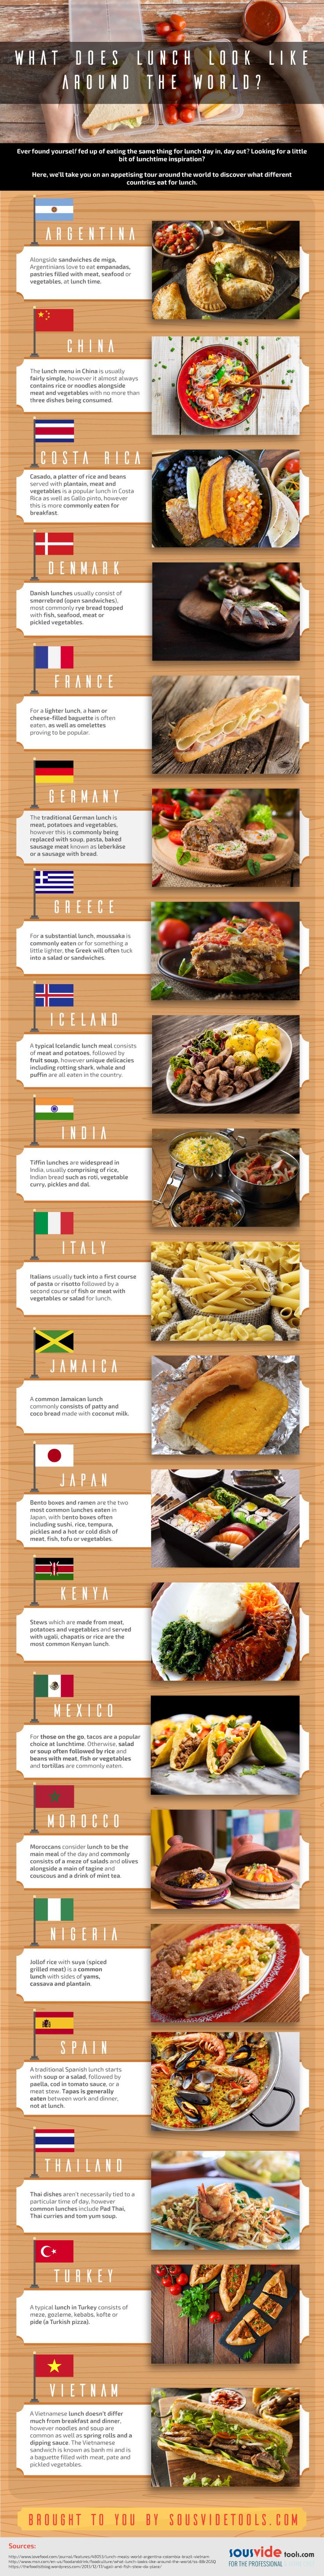 The infographic below, created by sousvidetools.com, shows just how different midday meals can be depending on what country you're in.